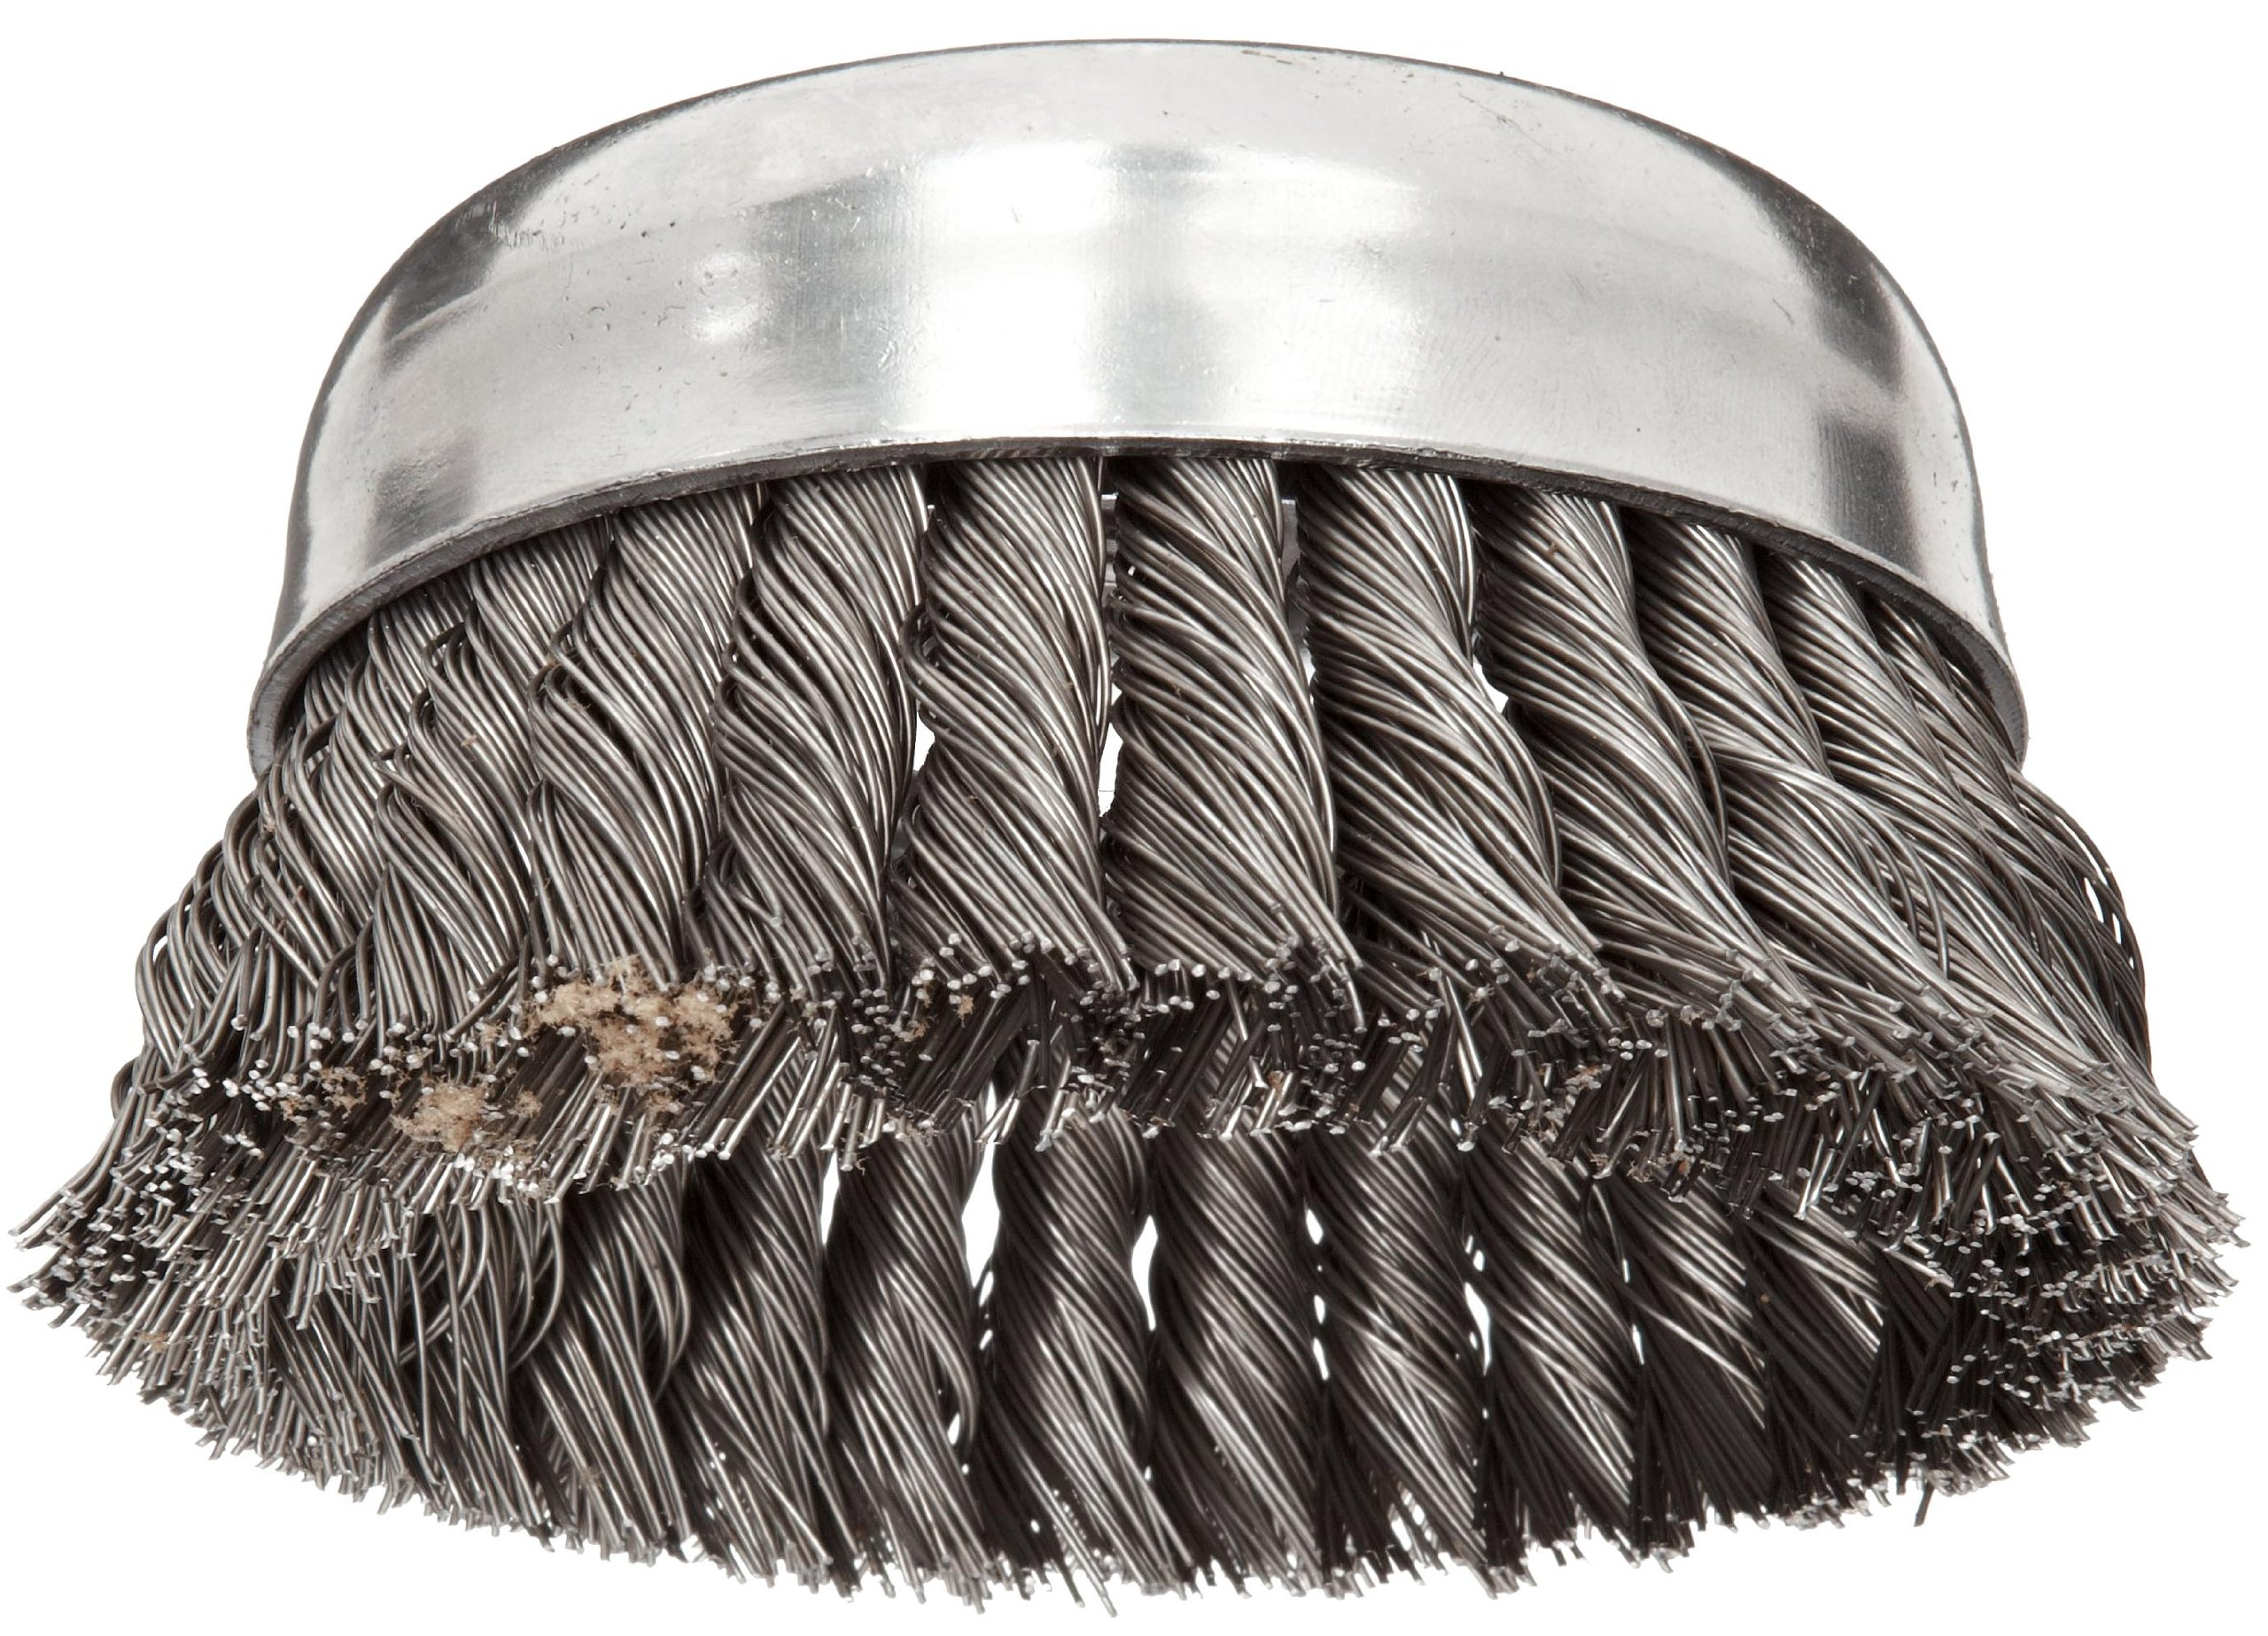 Weiler Wire Cup Brush, Threaded Hole, Steel, Partial Twist Knotted, Single Row, 5'' Diameter, 0.023'' Wire Diameter, 5/8''-11 Arbor, 1-3/8'' Bristle Length, 7000 rpm (Pack of 1)